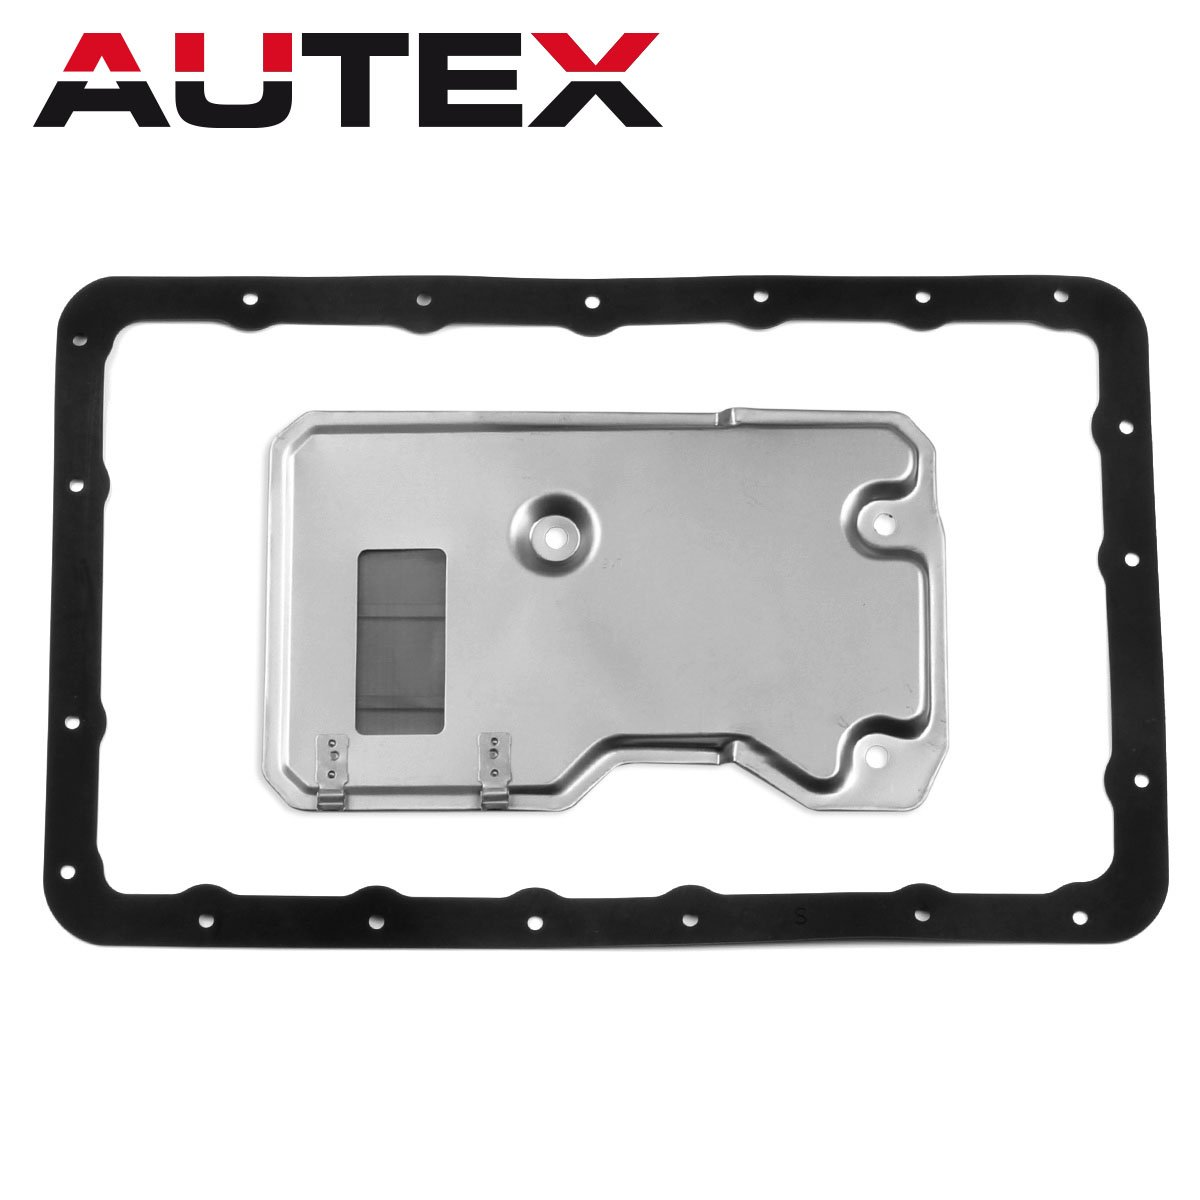 Amazon.com: AUTEX A340E A340F A340G A340H Transmission Filter Service Kit  Compatible With 1985-UP Toyota 4Runner Cressida Pickup Supra Lexus SC300 ...